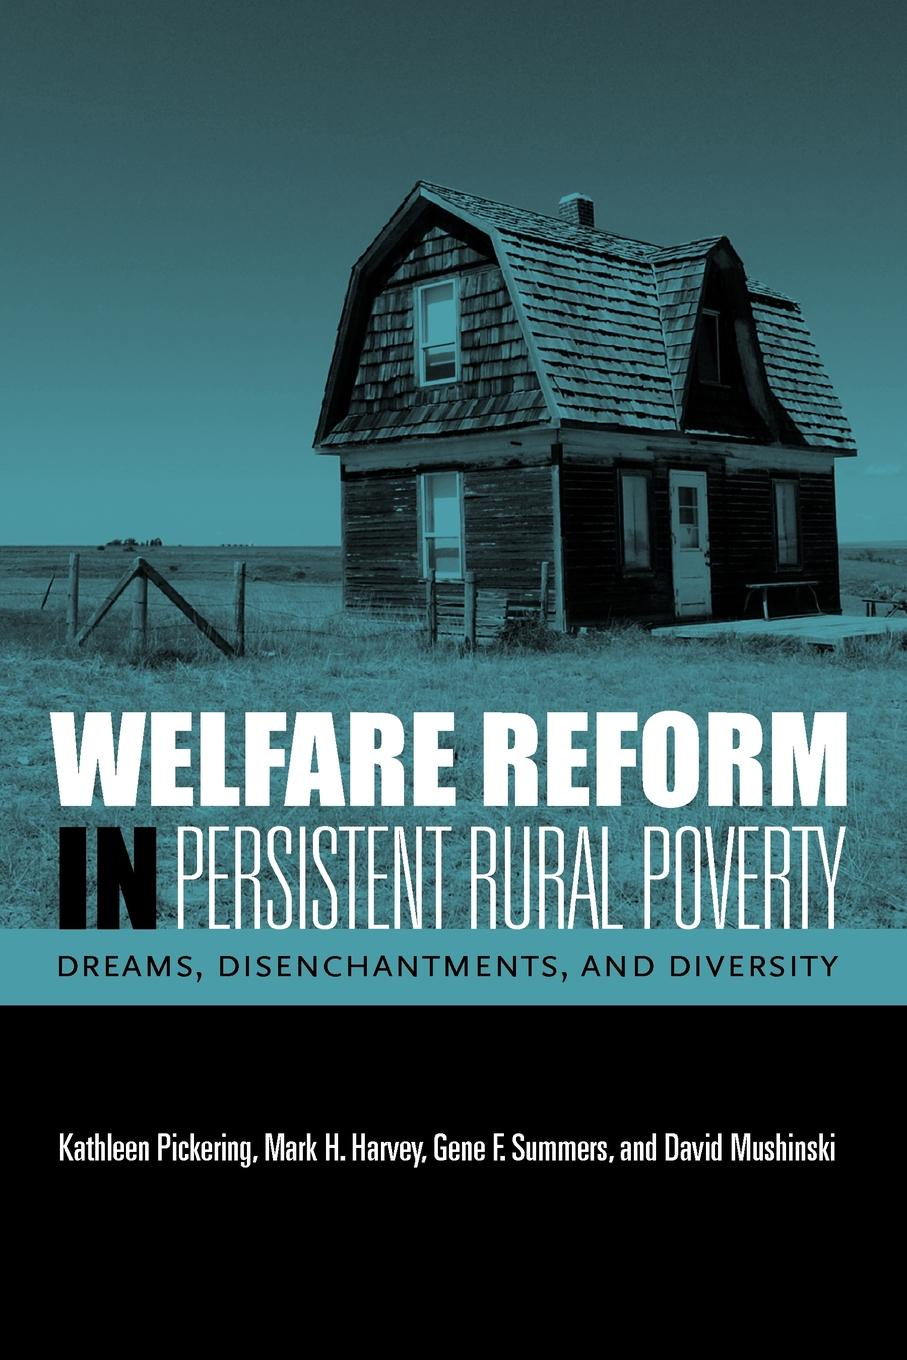 Kathleen Pickering, Mark H. Harvey, Gene F. Summers Welfare Reform in Persistent Rural Poverty. Dreams, Disenchantments, and Diversity